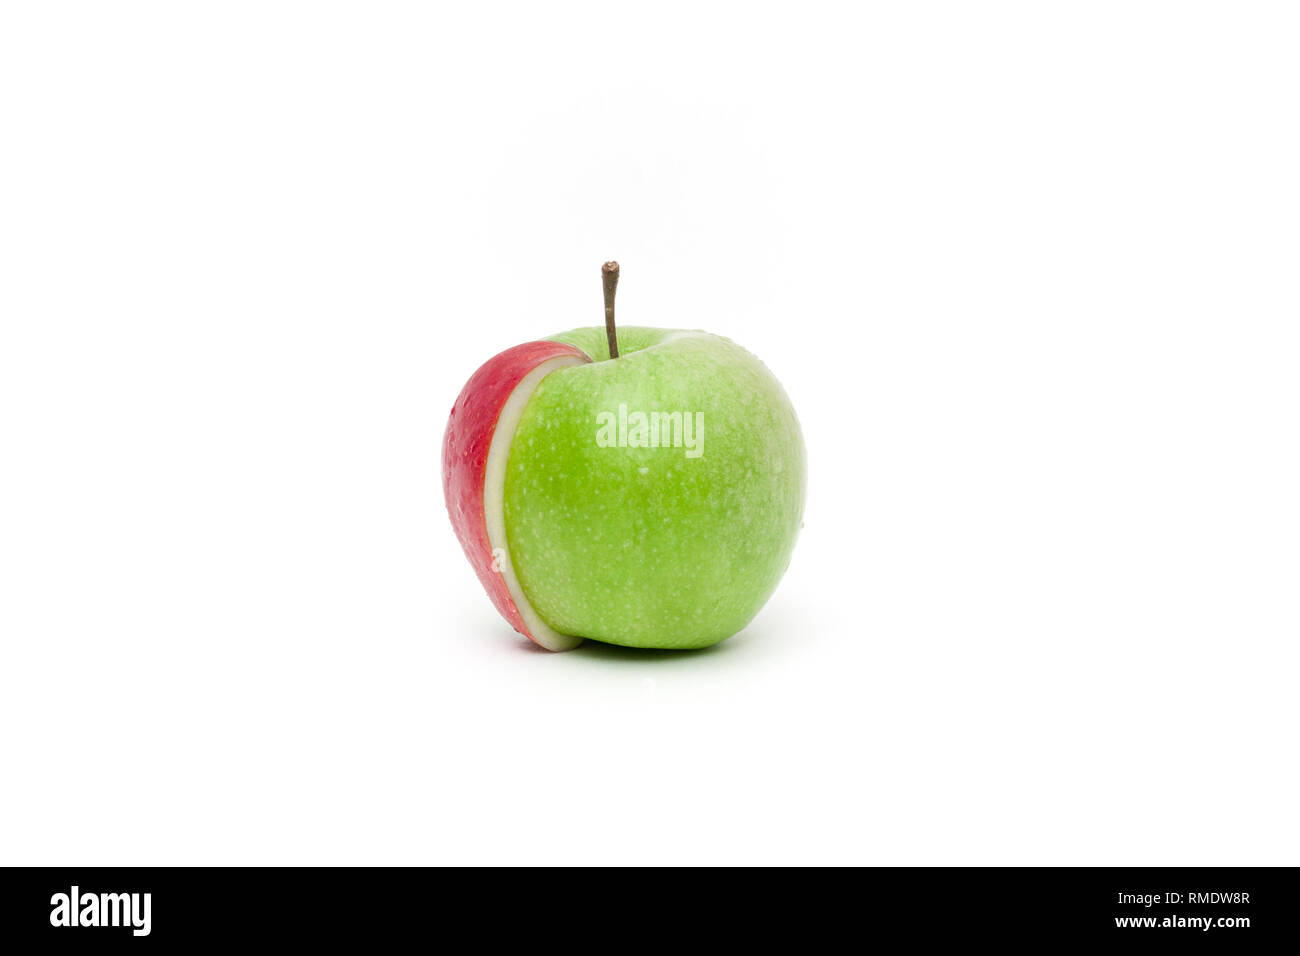 Conceptual view on a green fresh apple with a red slice attached to - Stock Image